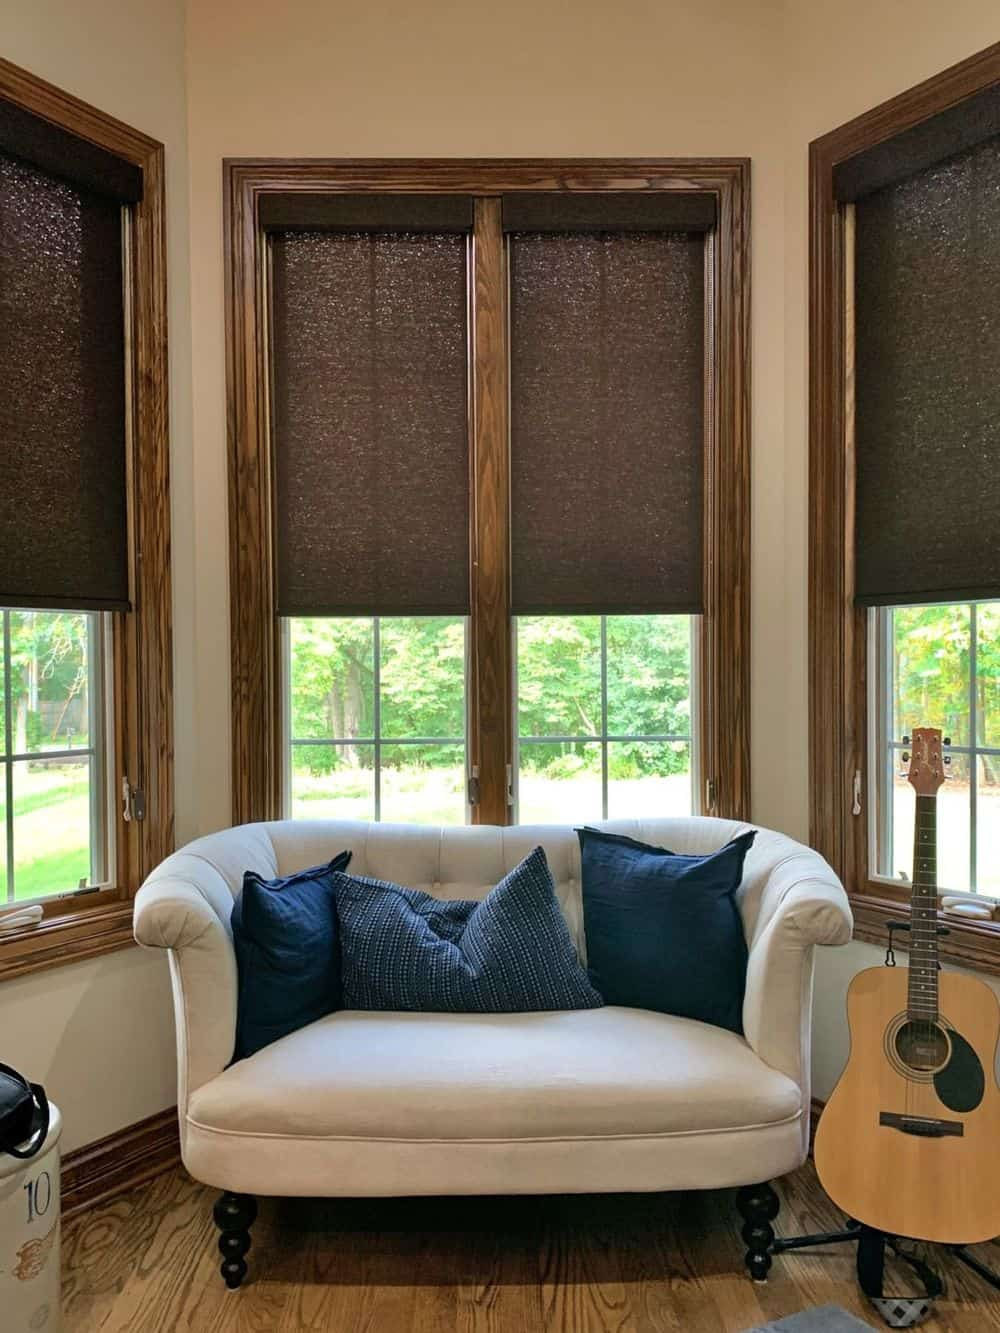 A focused look at this home's couch set by the windows featuring wooden frames and window shades.